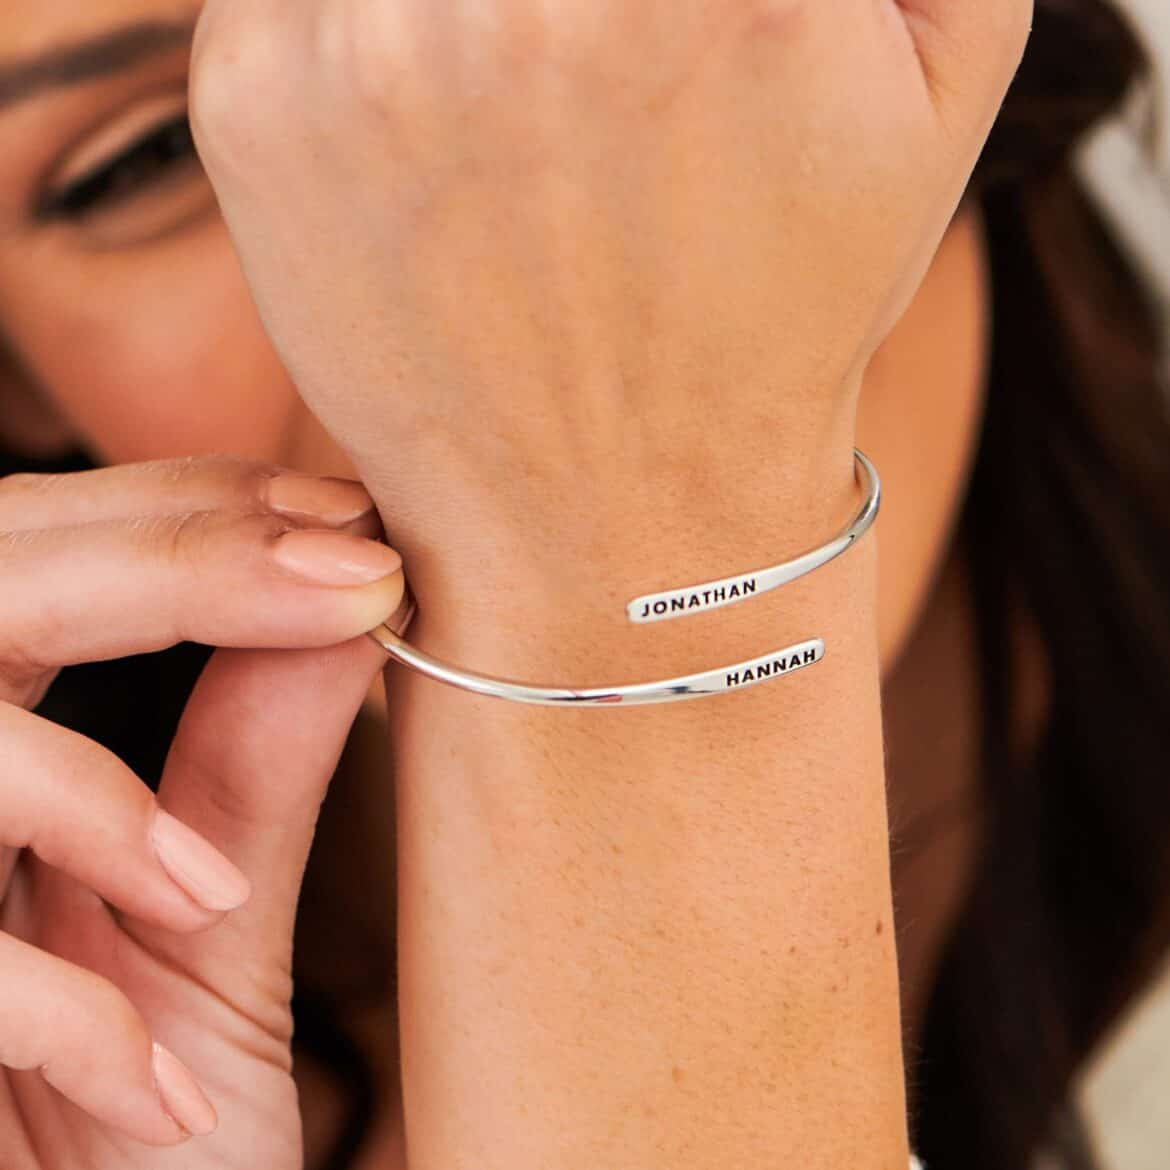 Personalized Adjustable Engraved Cuff Bracelet - Gold or Silver  Hand Crafted Wedding Day Bridal Jewelry Ideas